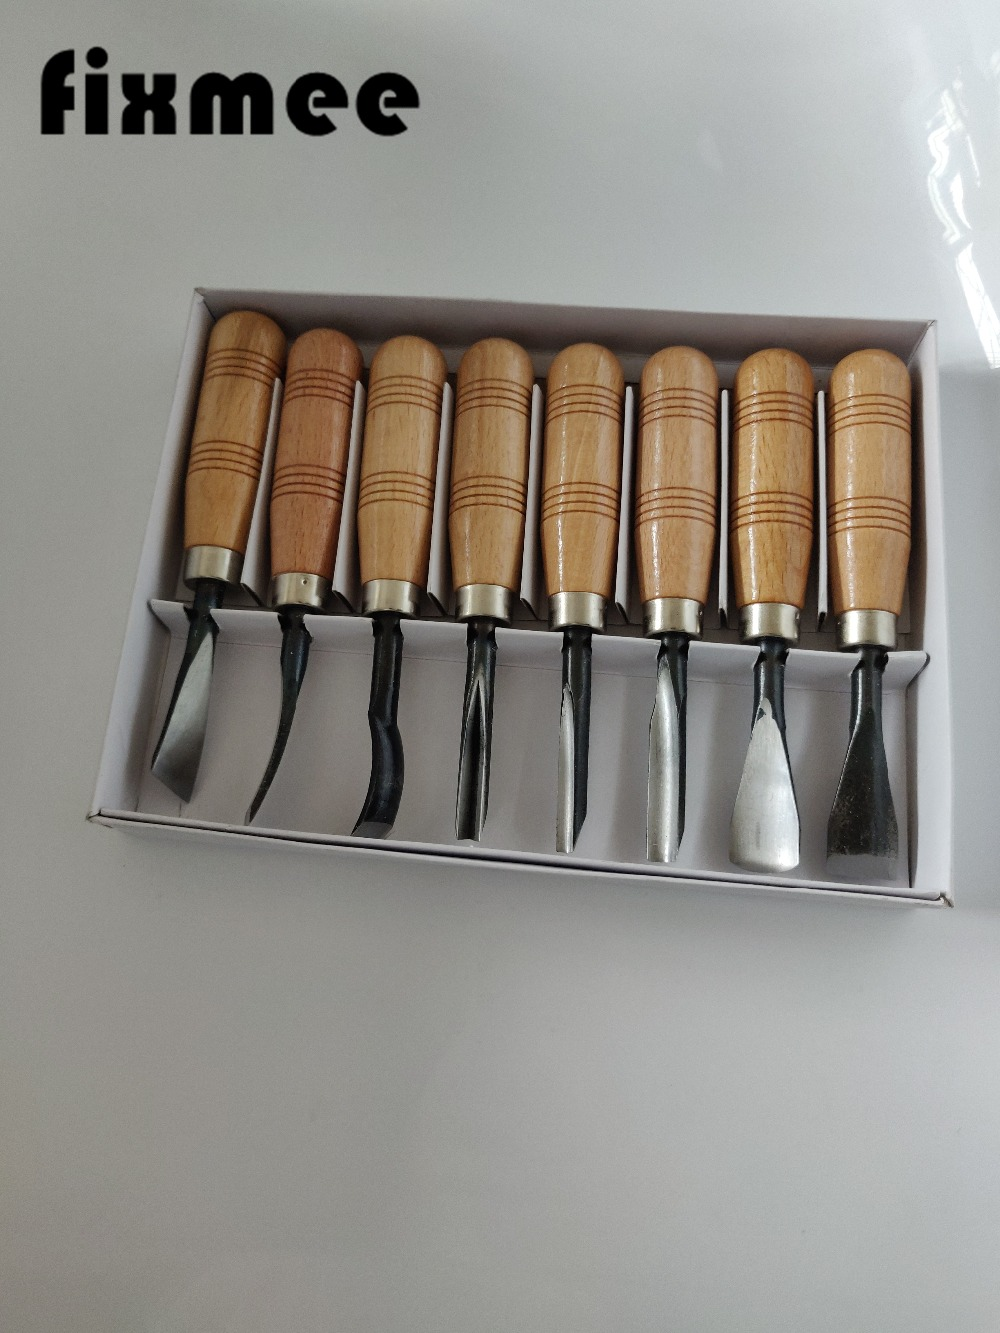 Dry Set Tools Carving Detail Chip Set Wood Tool  Fixmee Chisel Knives Hand 8Pcs